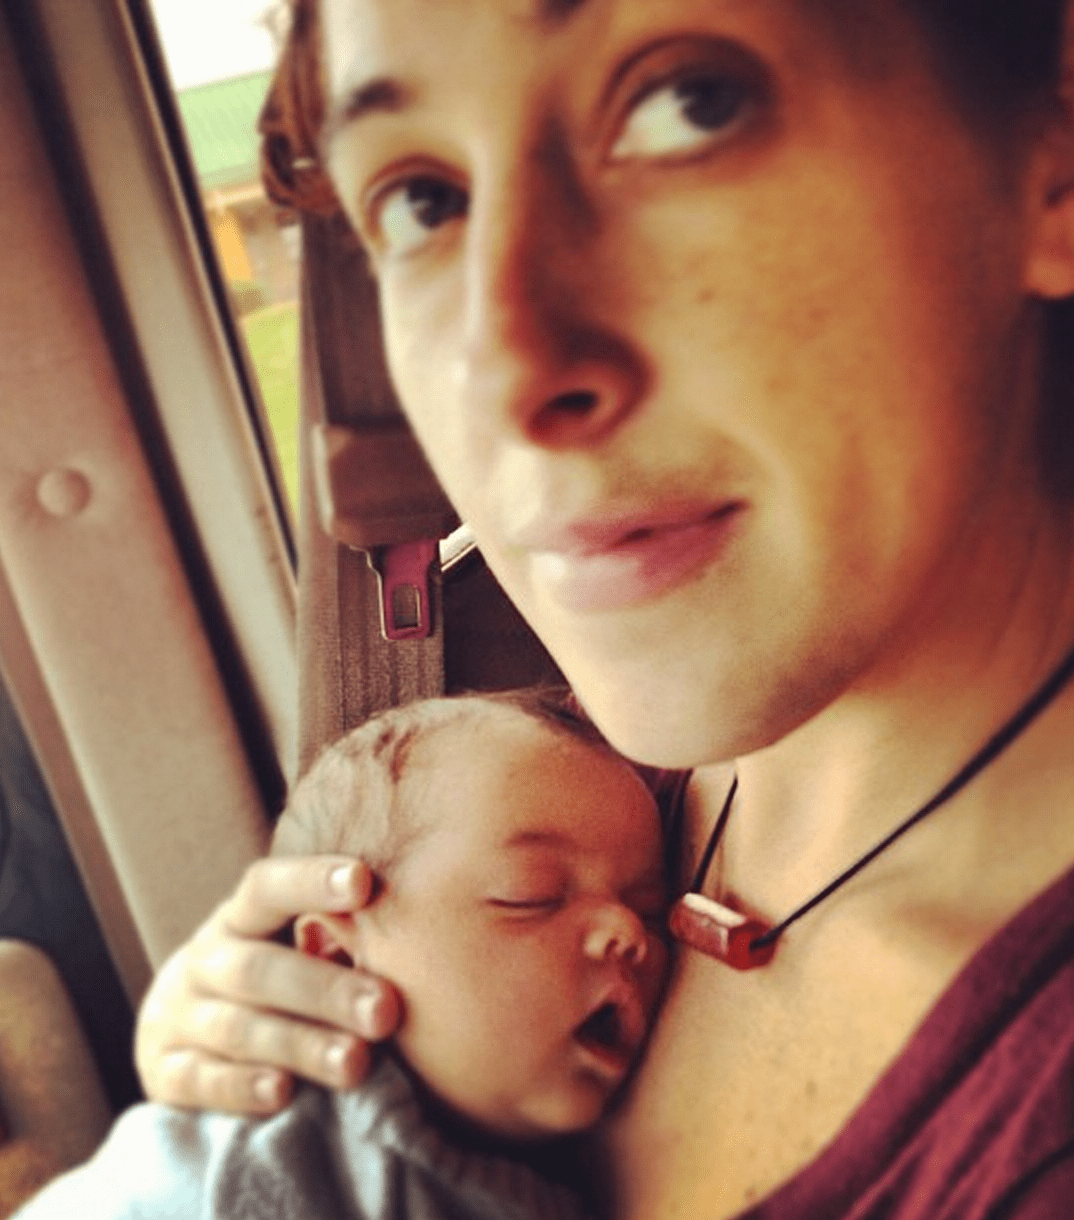 a mother holds her infant child in the front seat of a vw bus